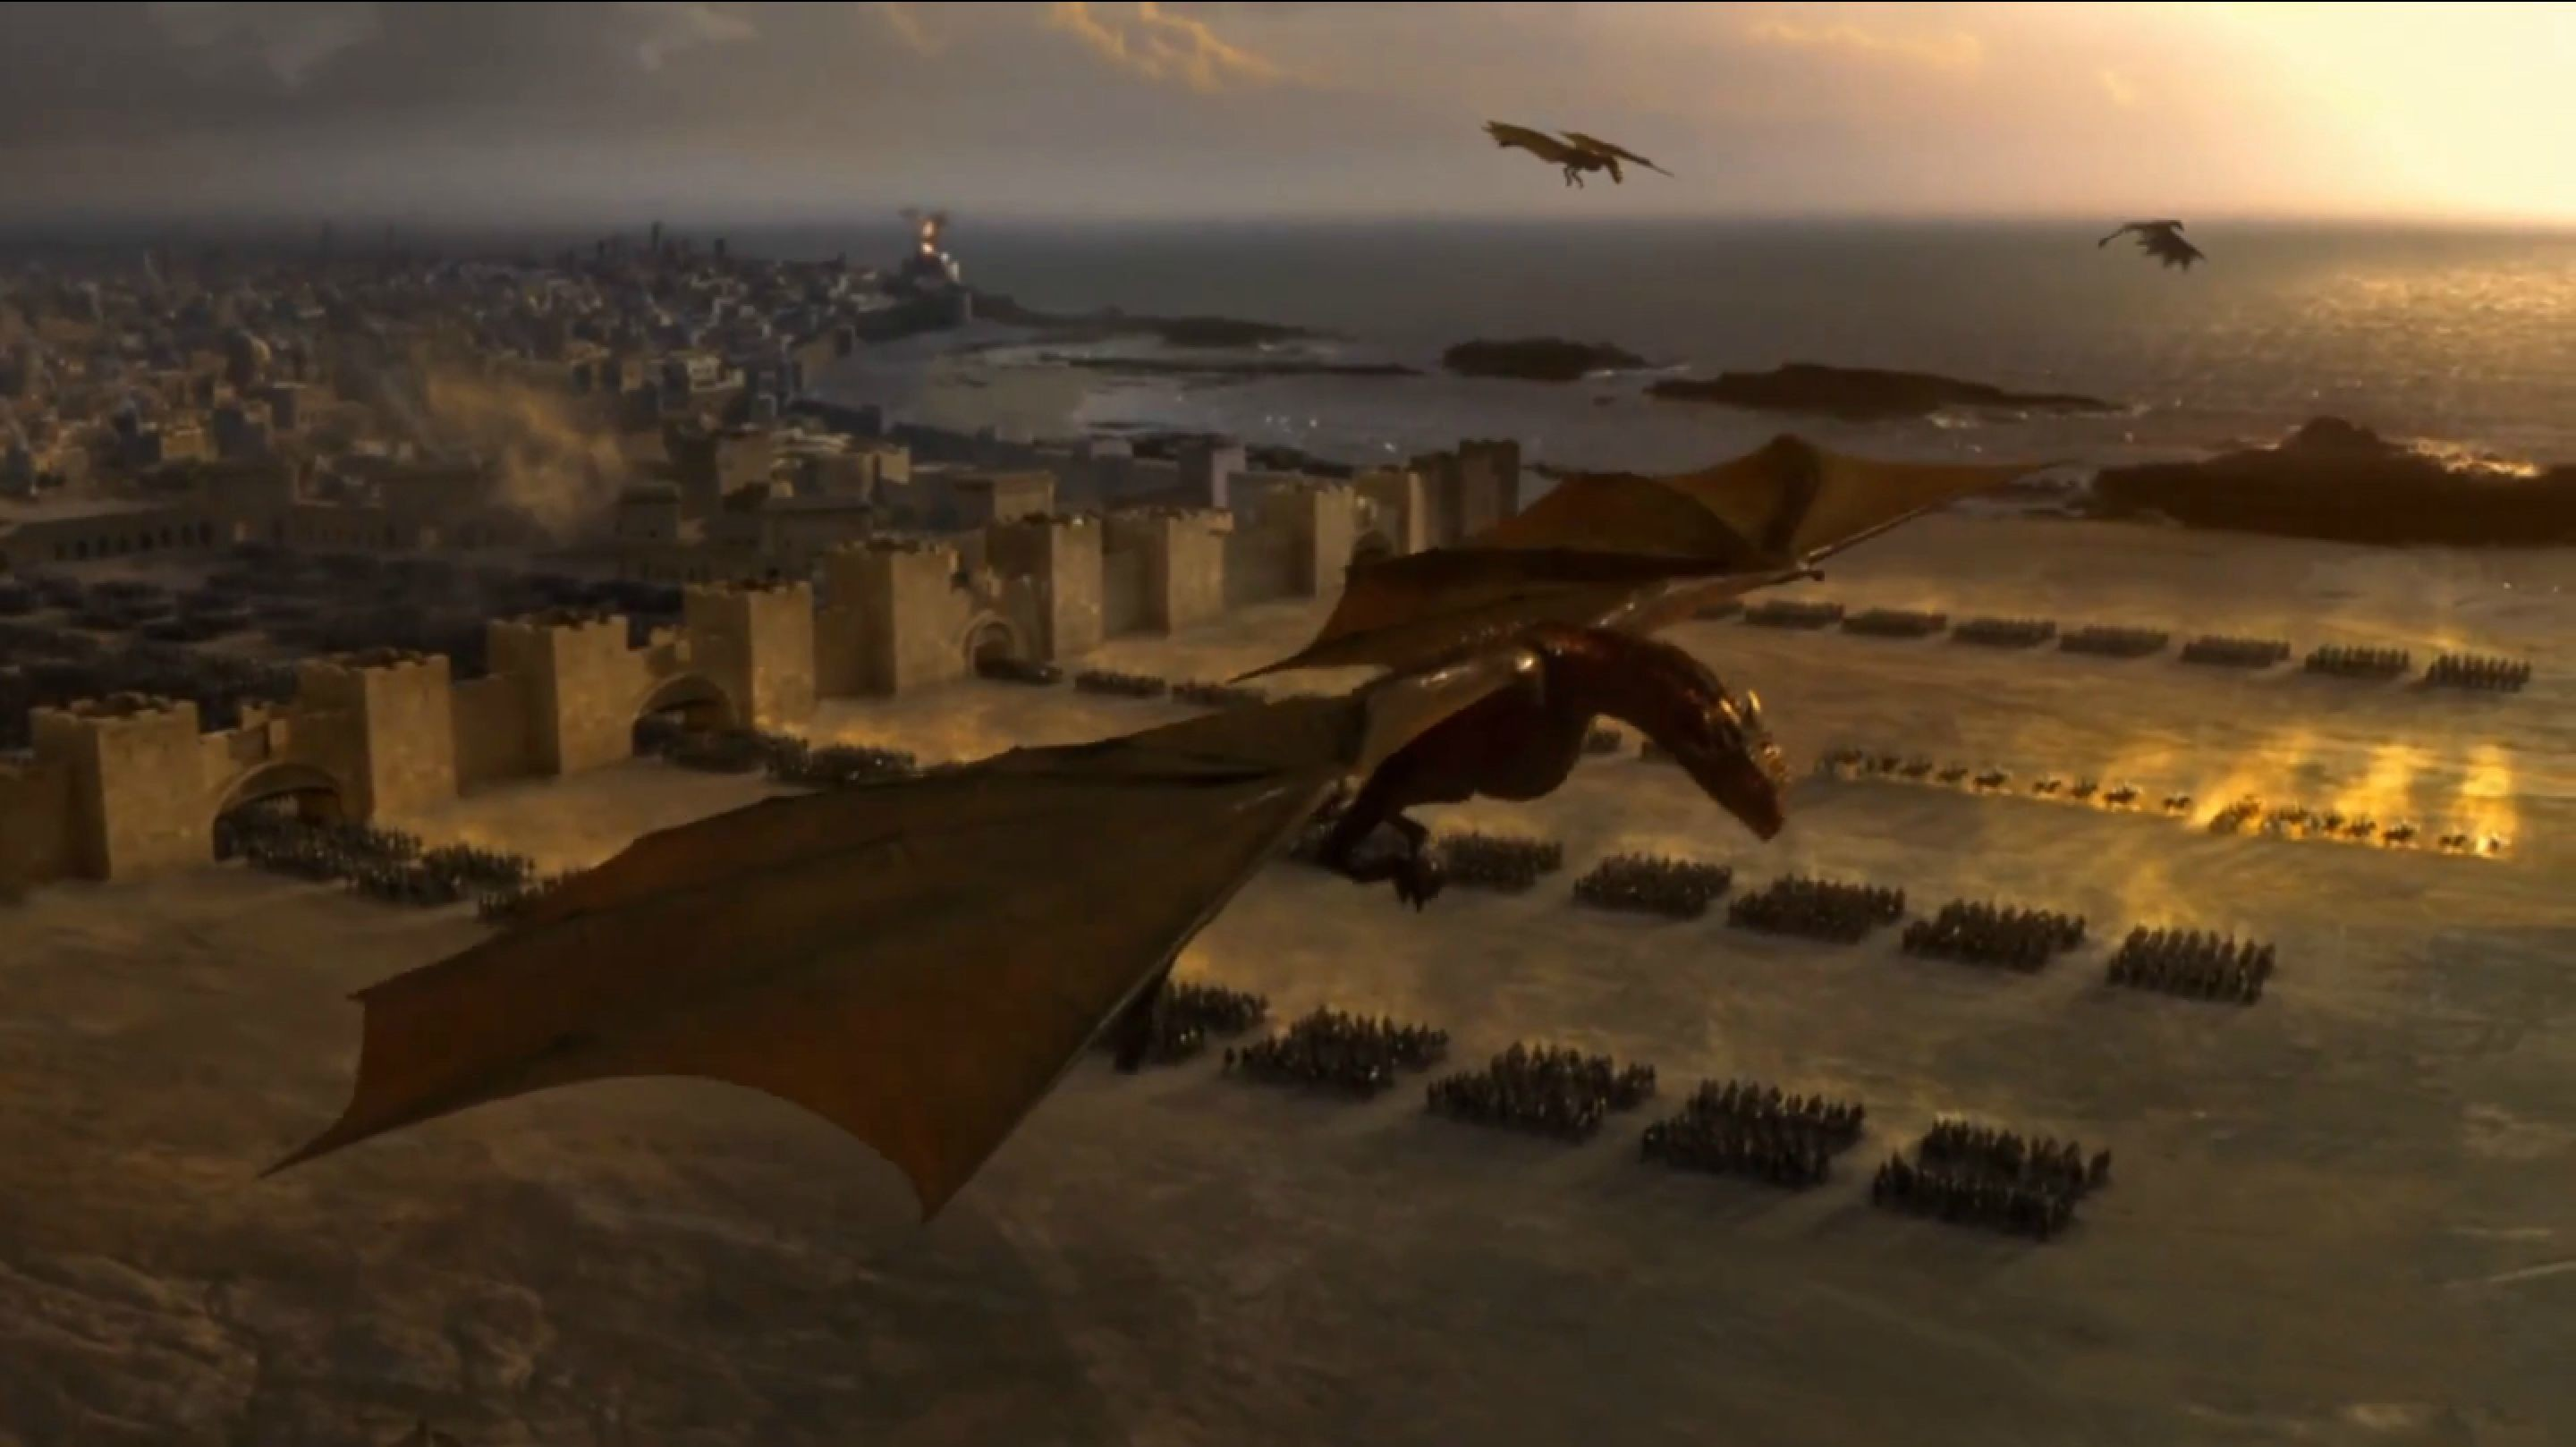 Dragons from Game of Thrones   HD wallpaper 2880x1618